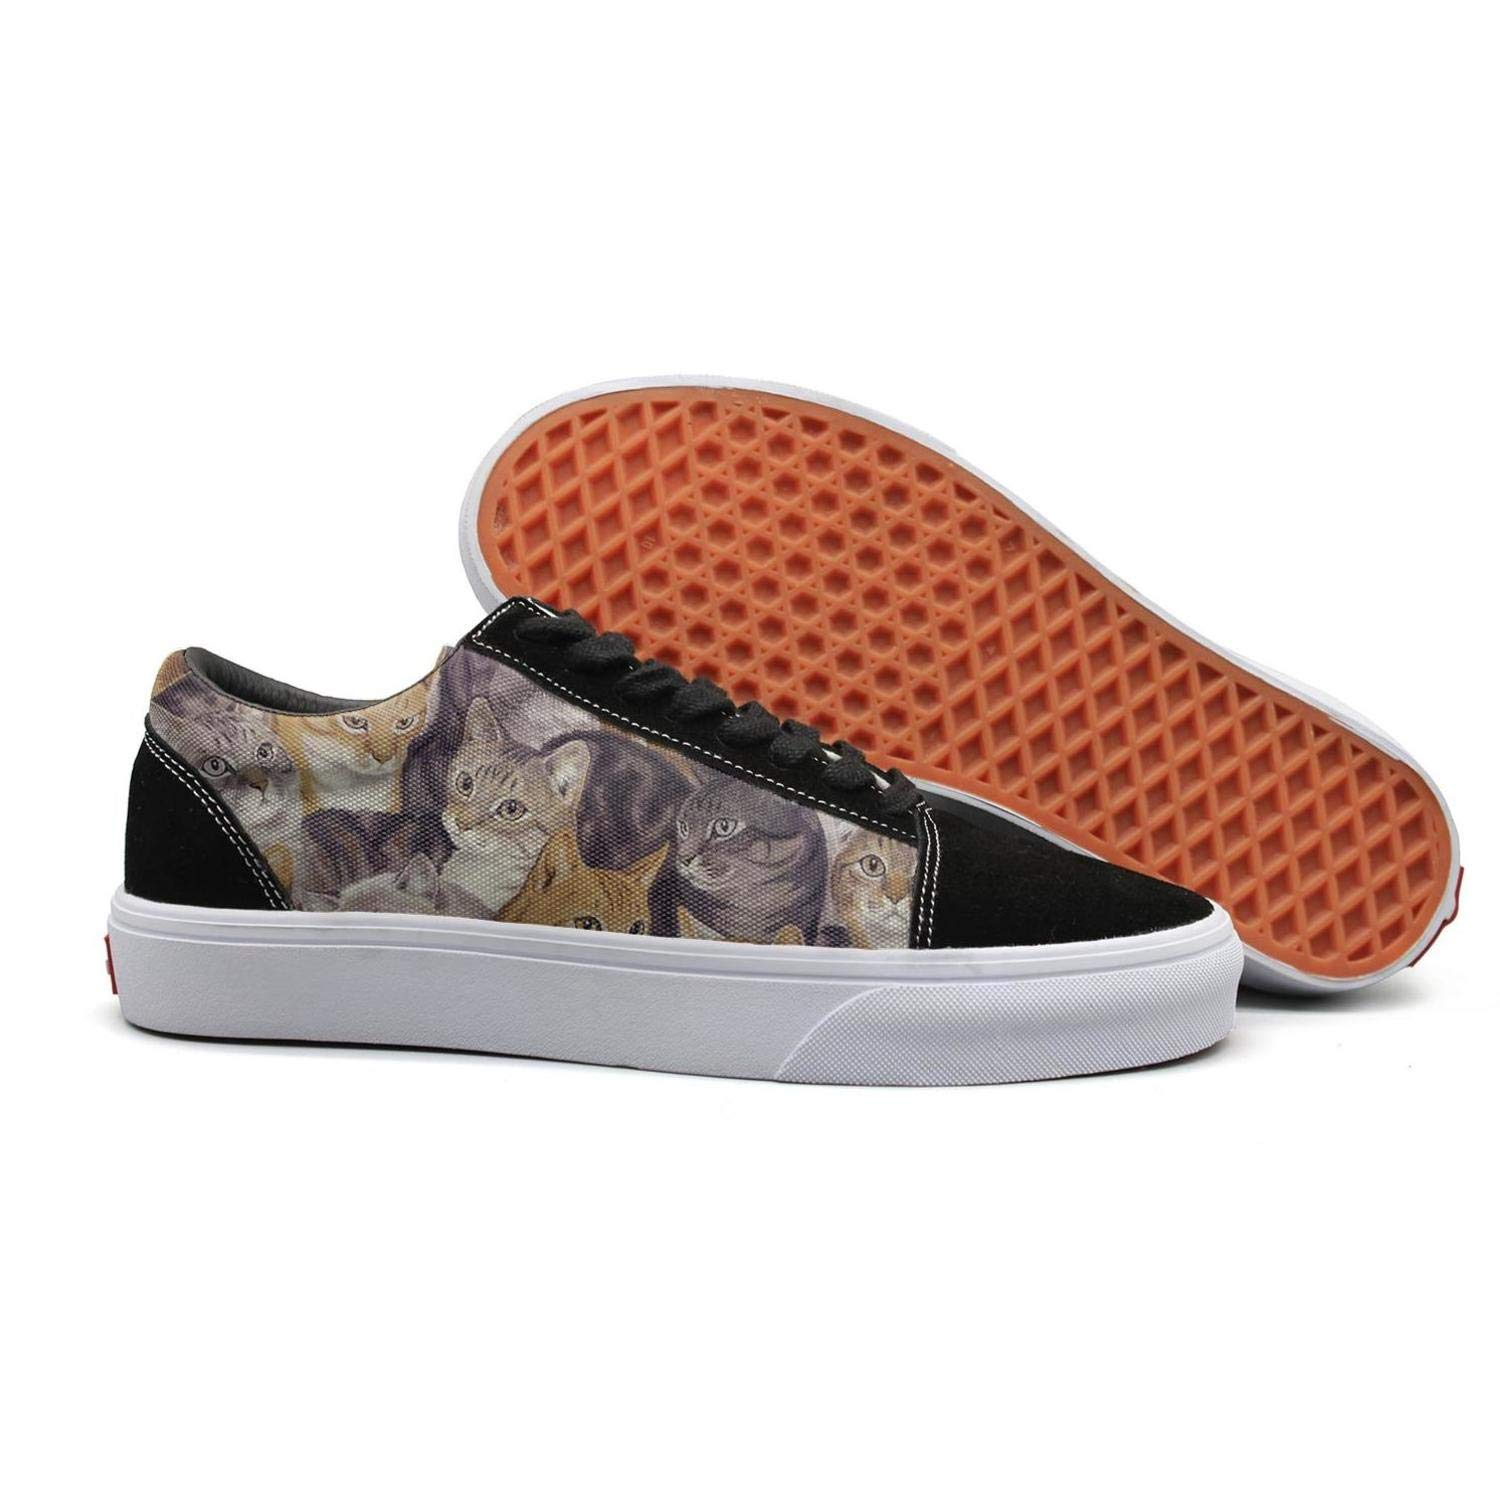 Pheomg Women Packed cats-01 Print Casual Slip-on Canvas Shoes Cute Casual Shoes